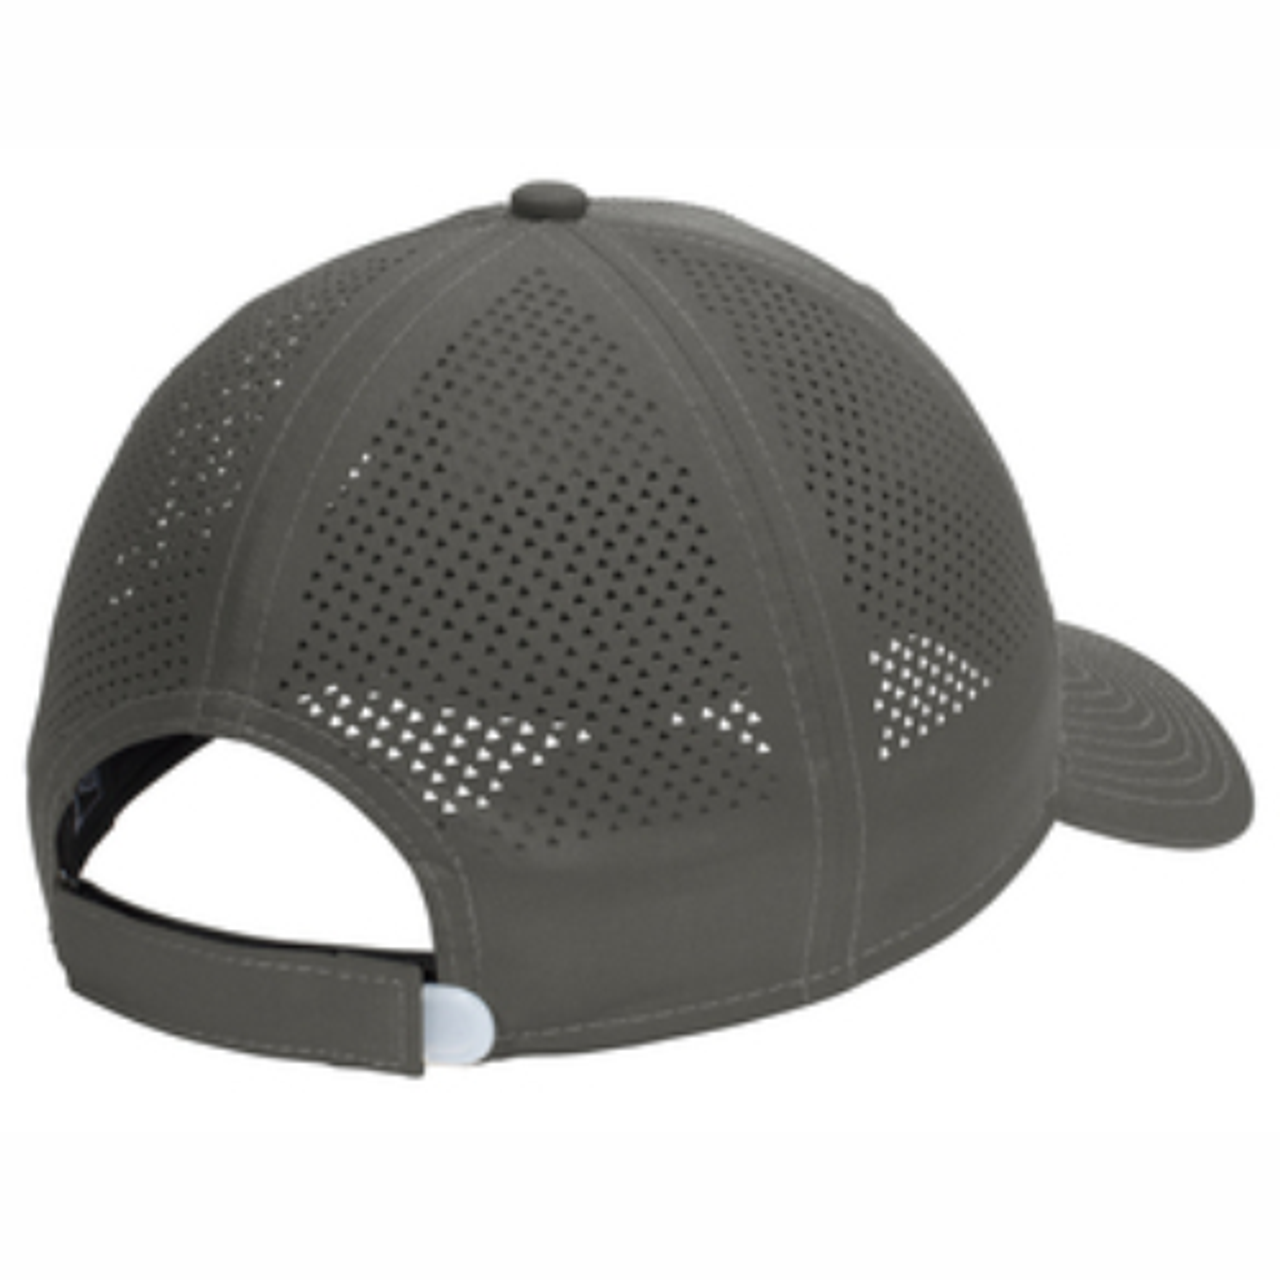 NOVA RFC Performance Adjustable Hat